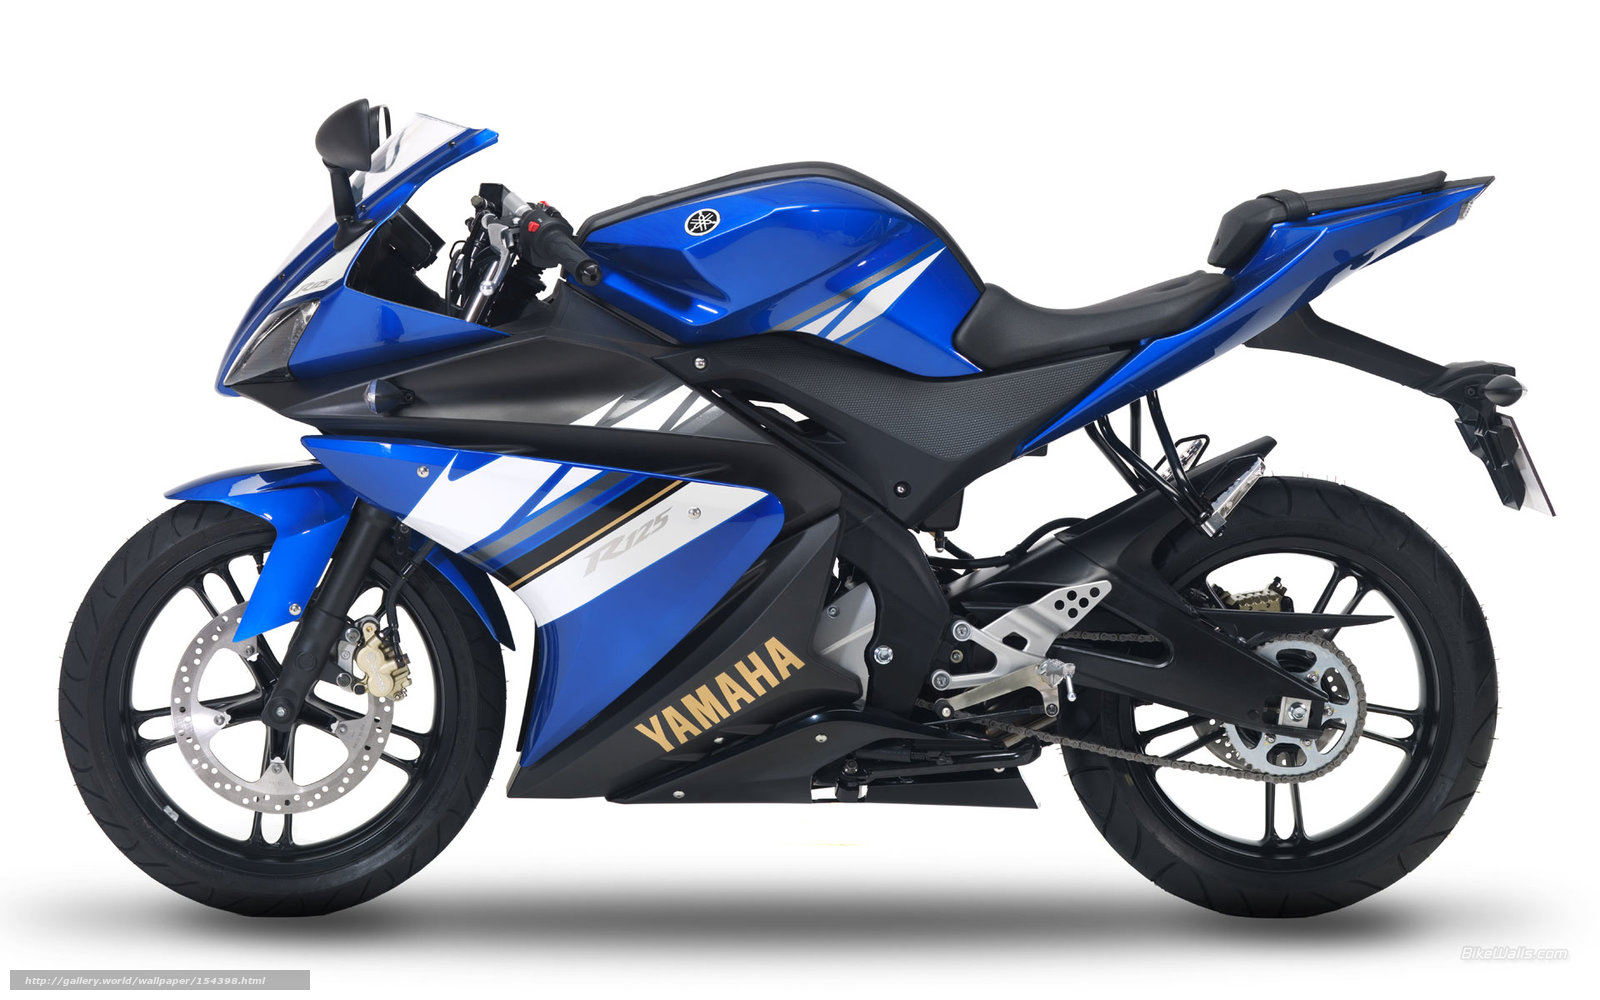 yamaha yzf r125 hd wallpapers | hd pictures gallery - all latest new